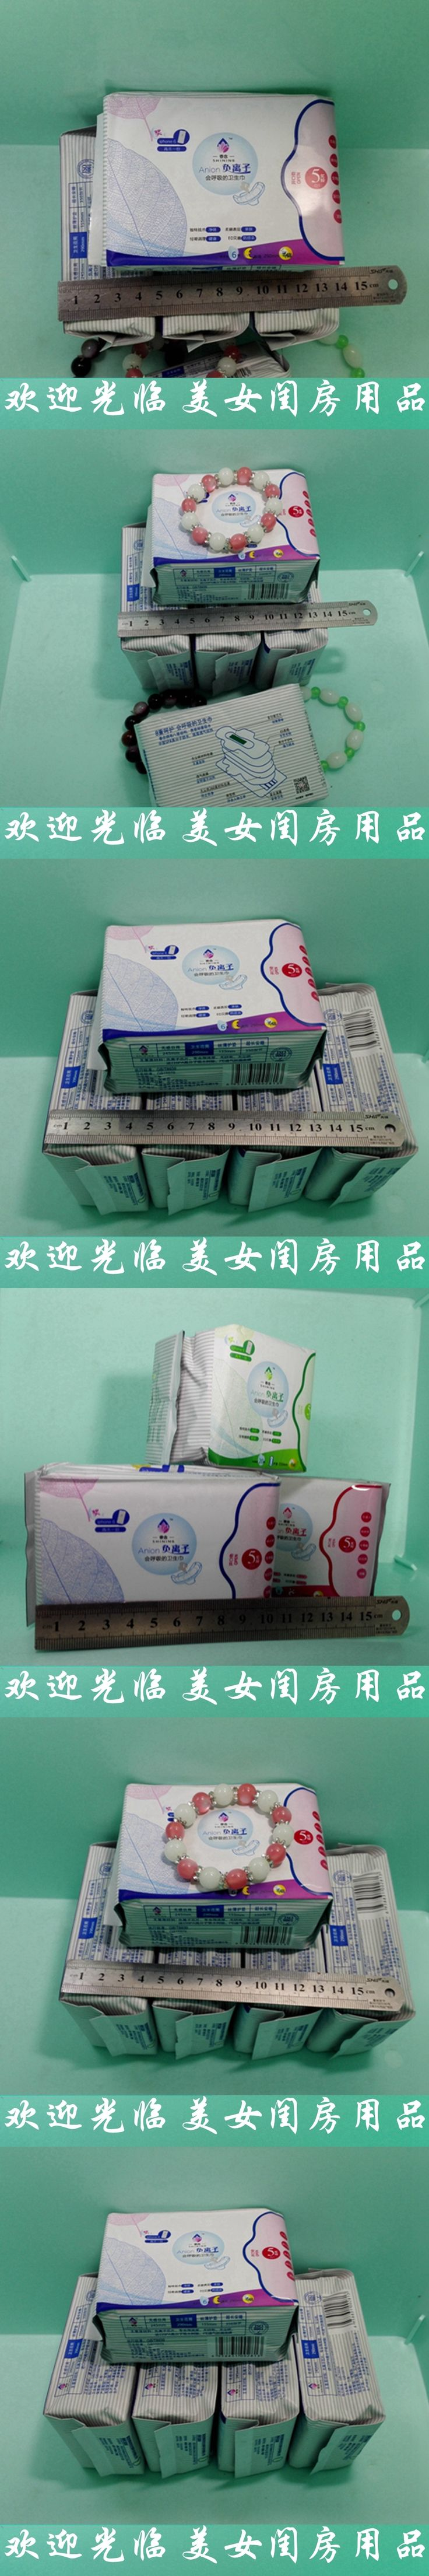 Overnight sanitary napkins xiang nian Woman's sanitary pads Anion pad Anion, Sanitary towels Panty liners Minus ion 4 pc